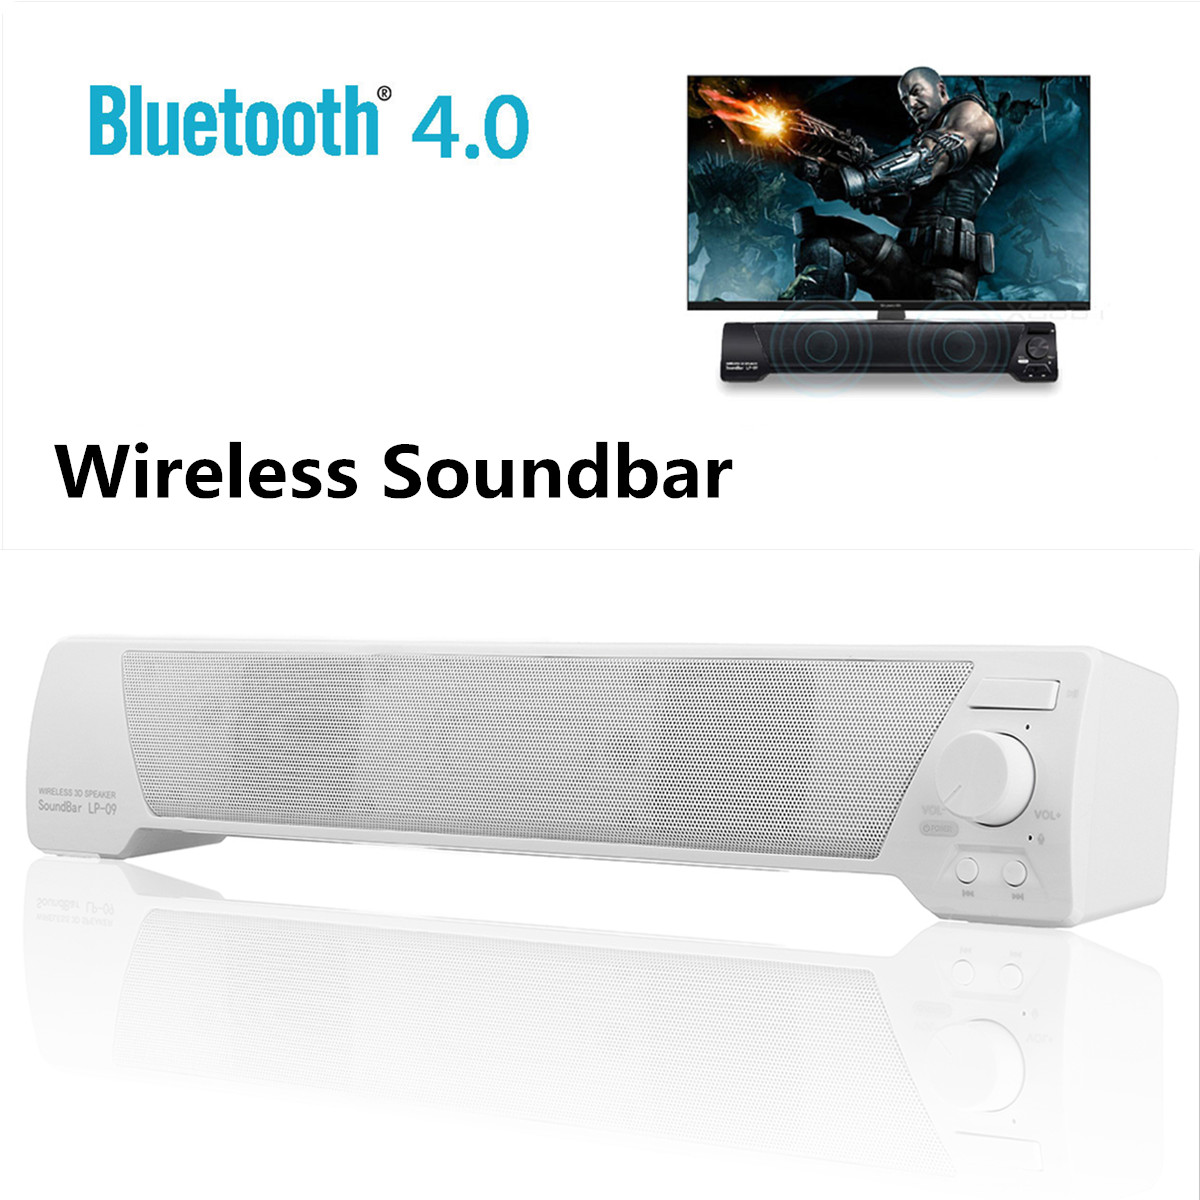 Leory Bluetooth Soundbar Wireless Bluetooth Speaker Bass Portable Hifi 3d Stereo Surround Subwoofer Hifi Aux Tf Usb A Complete Range Of Specifications